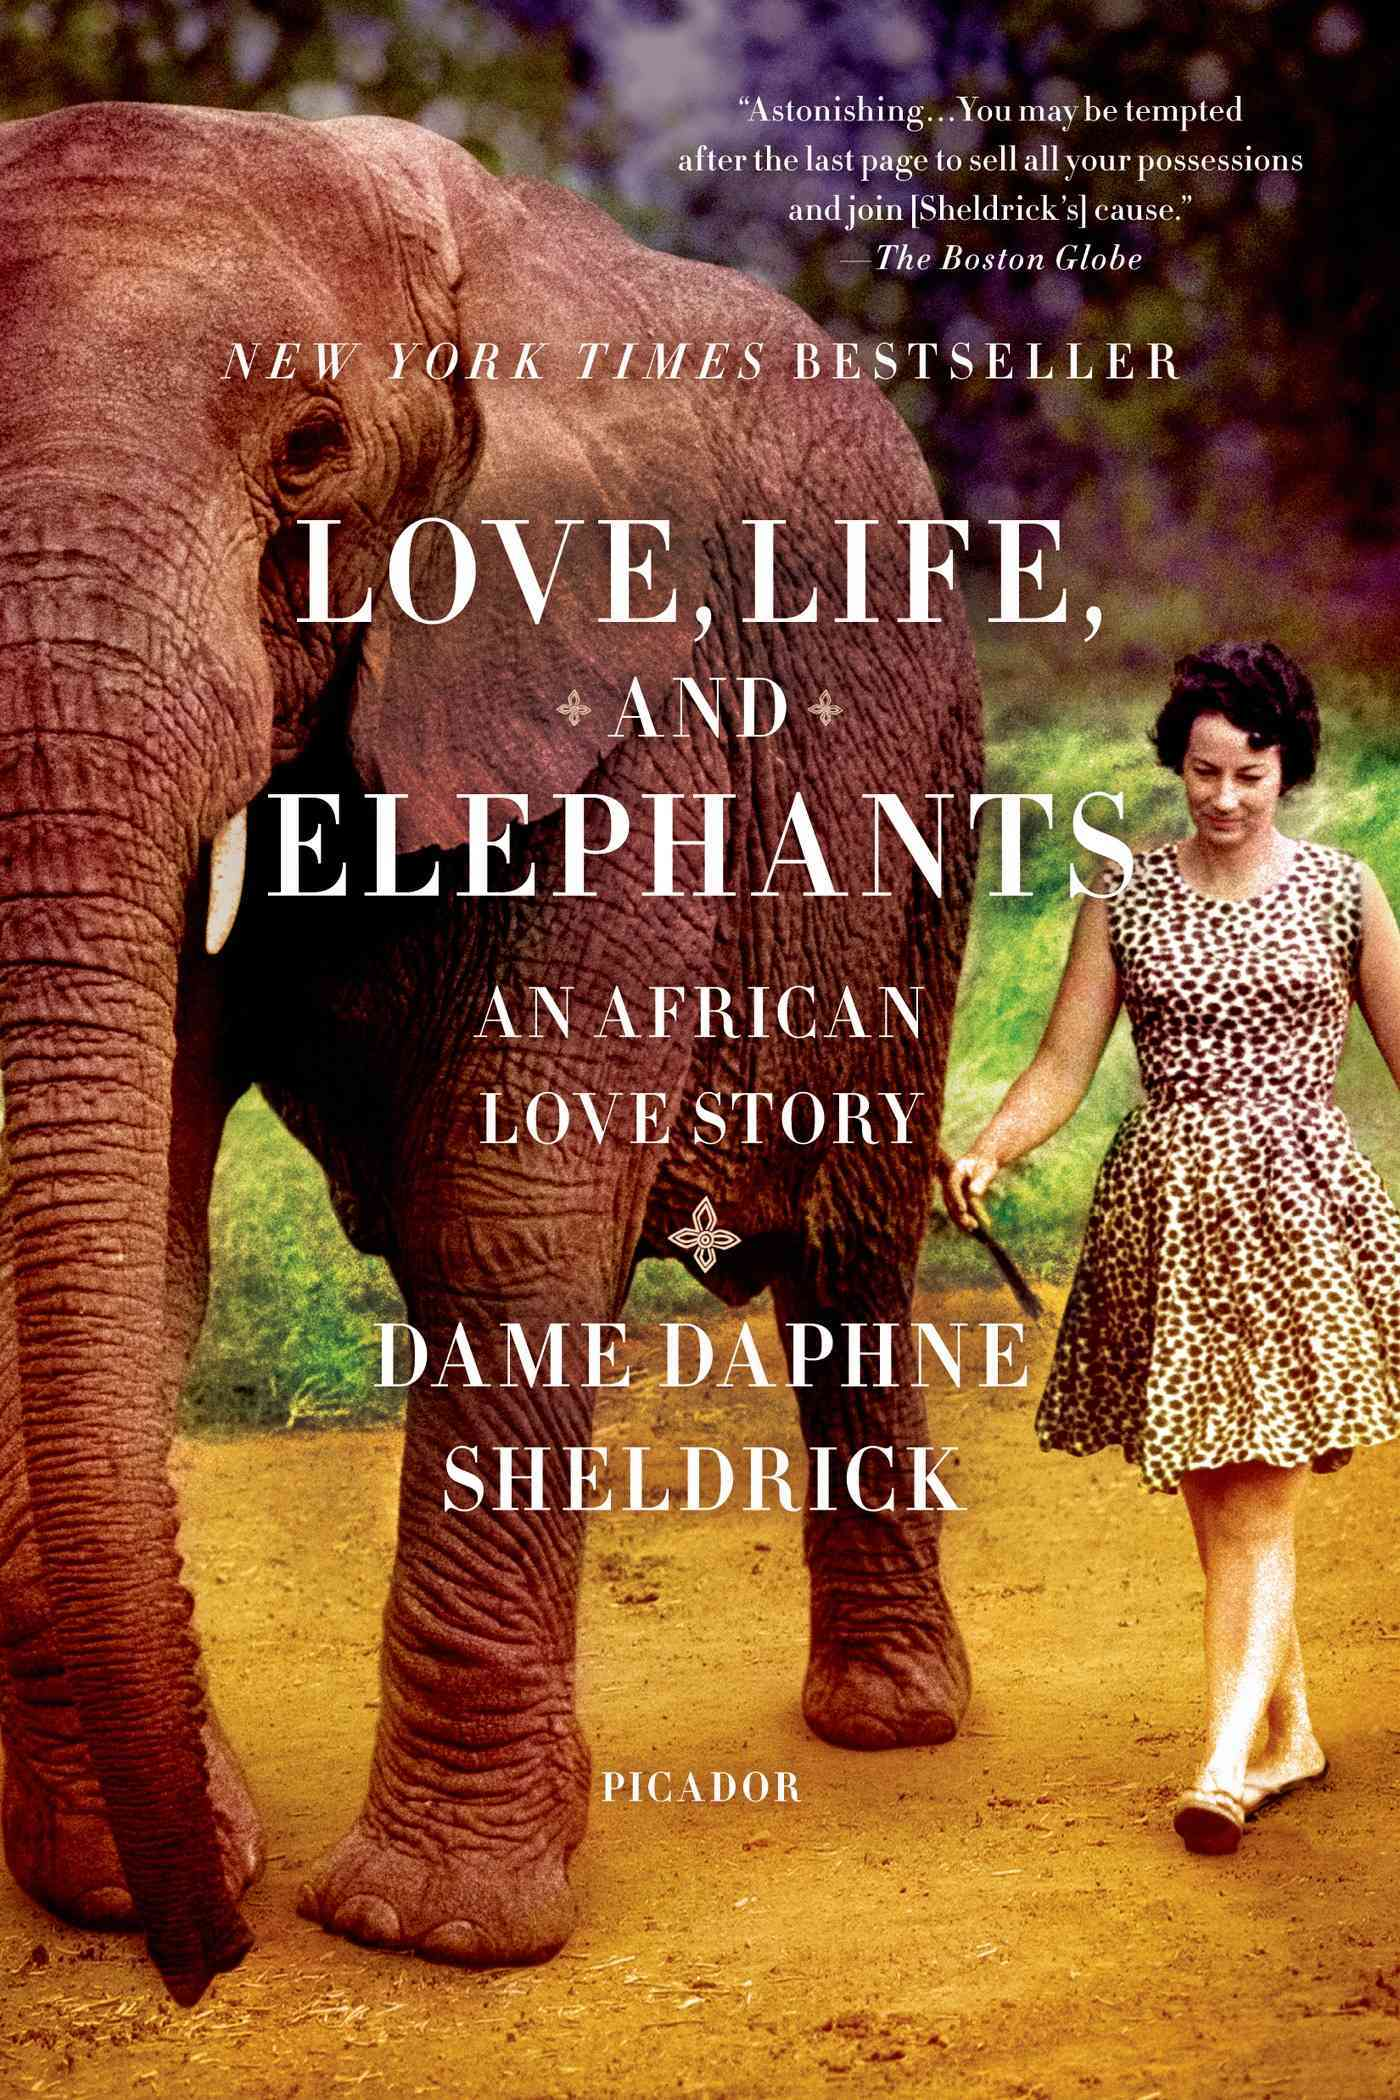 Love, Life, and Elephants By Sheldrick, Daphne